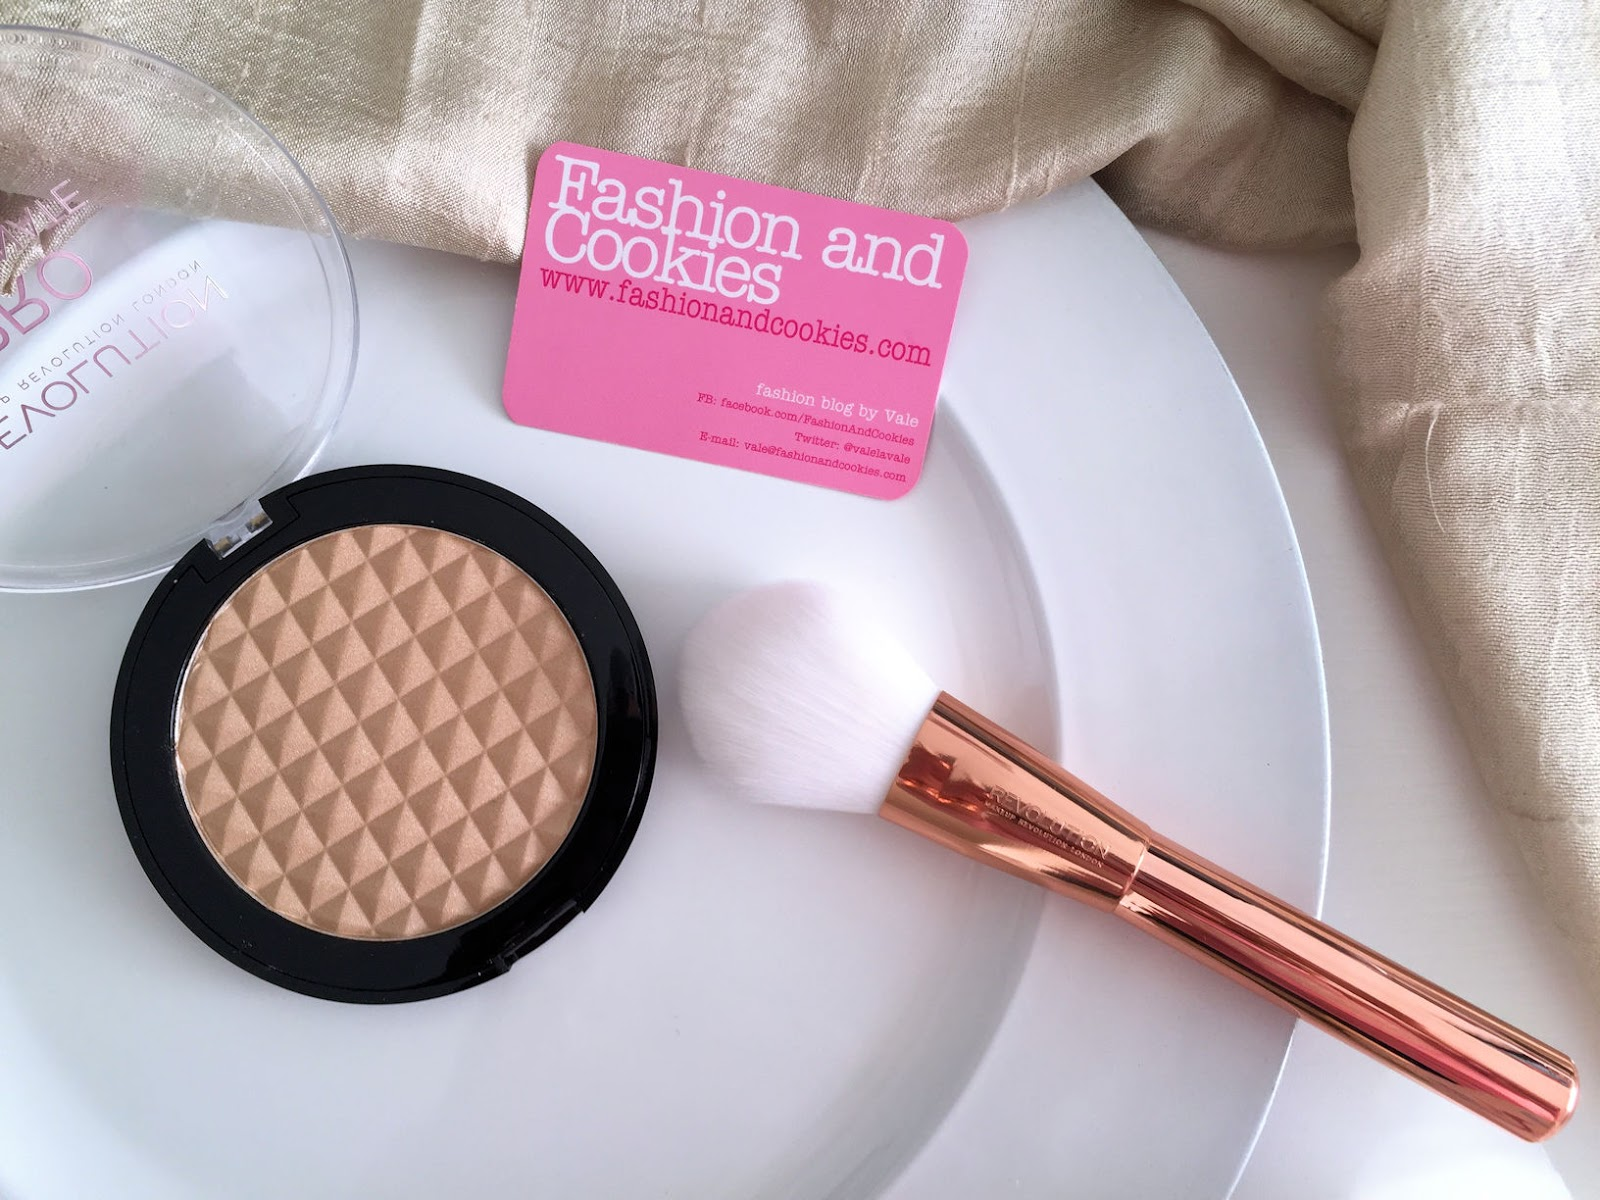 Makeup Revolution Pro Illuminate and Ultra Metals Revolution makeup brushes review on Fashion and Cookies beauty blog, beauty blogger